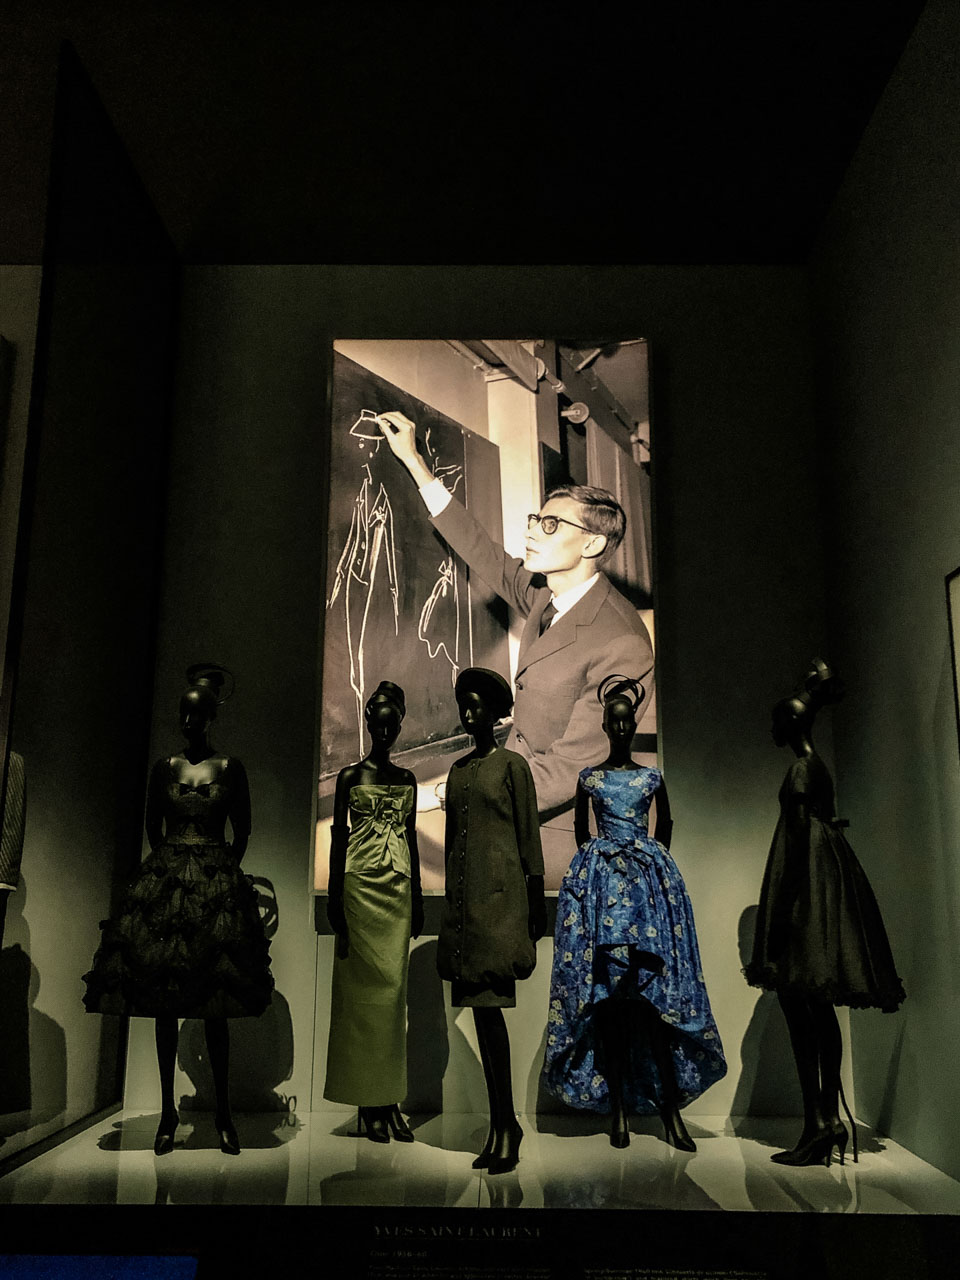 Creations of Yves Saint Laurent for Dior at the Victoria and Albert Museum in London